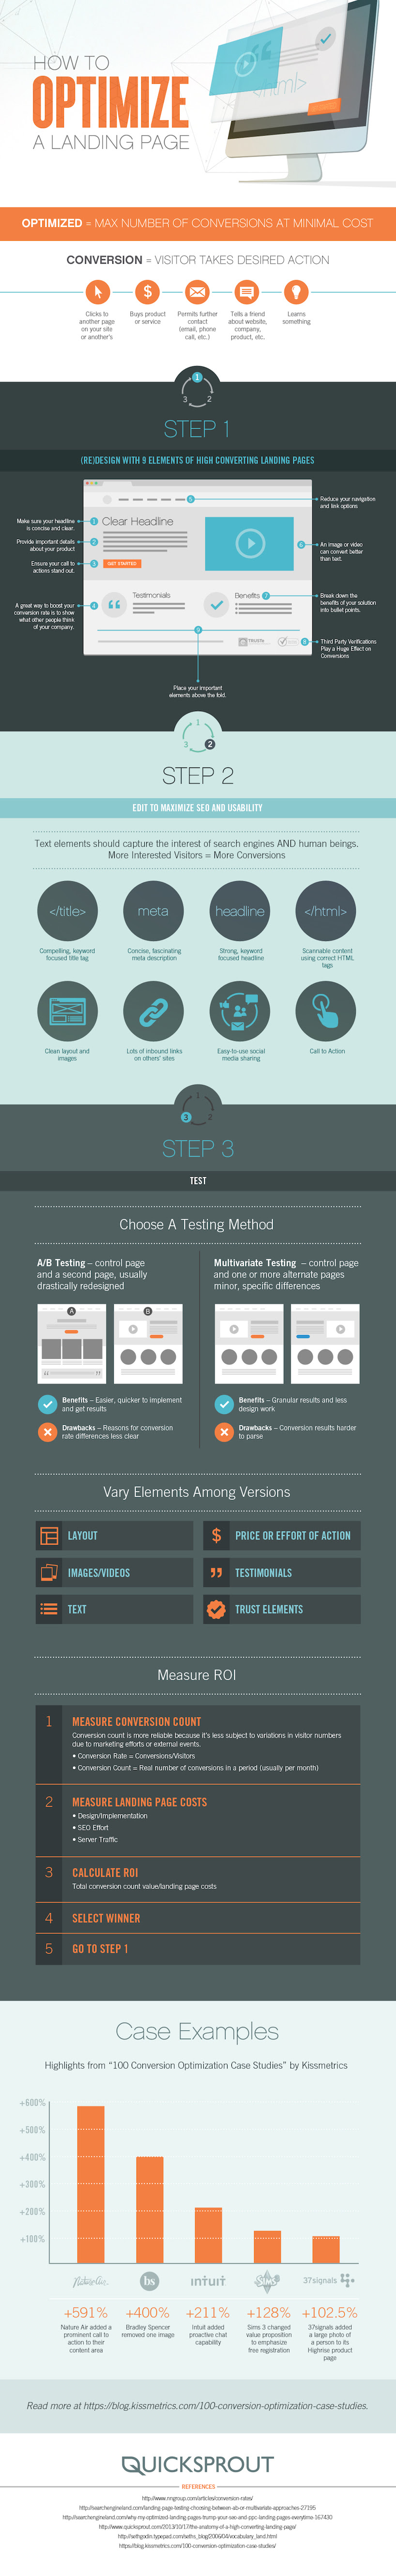 Infographic: How to Optimize a Landing Page [Infographic]